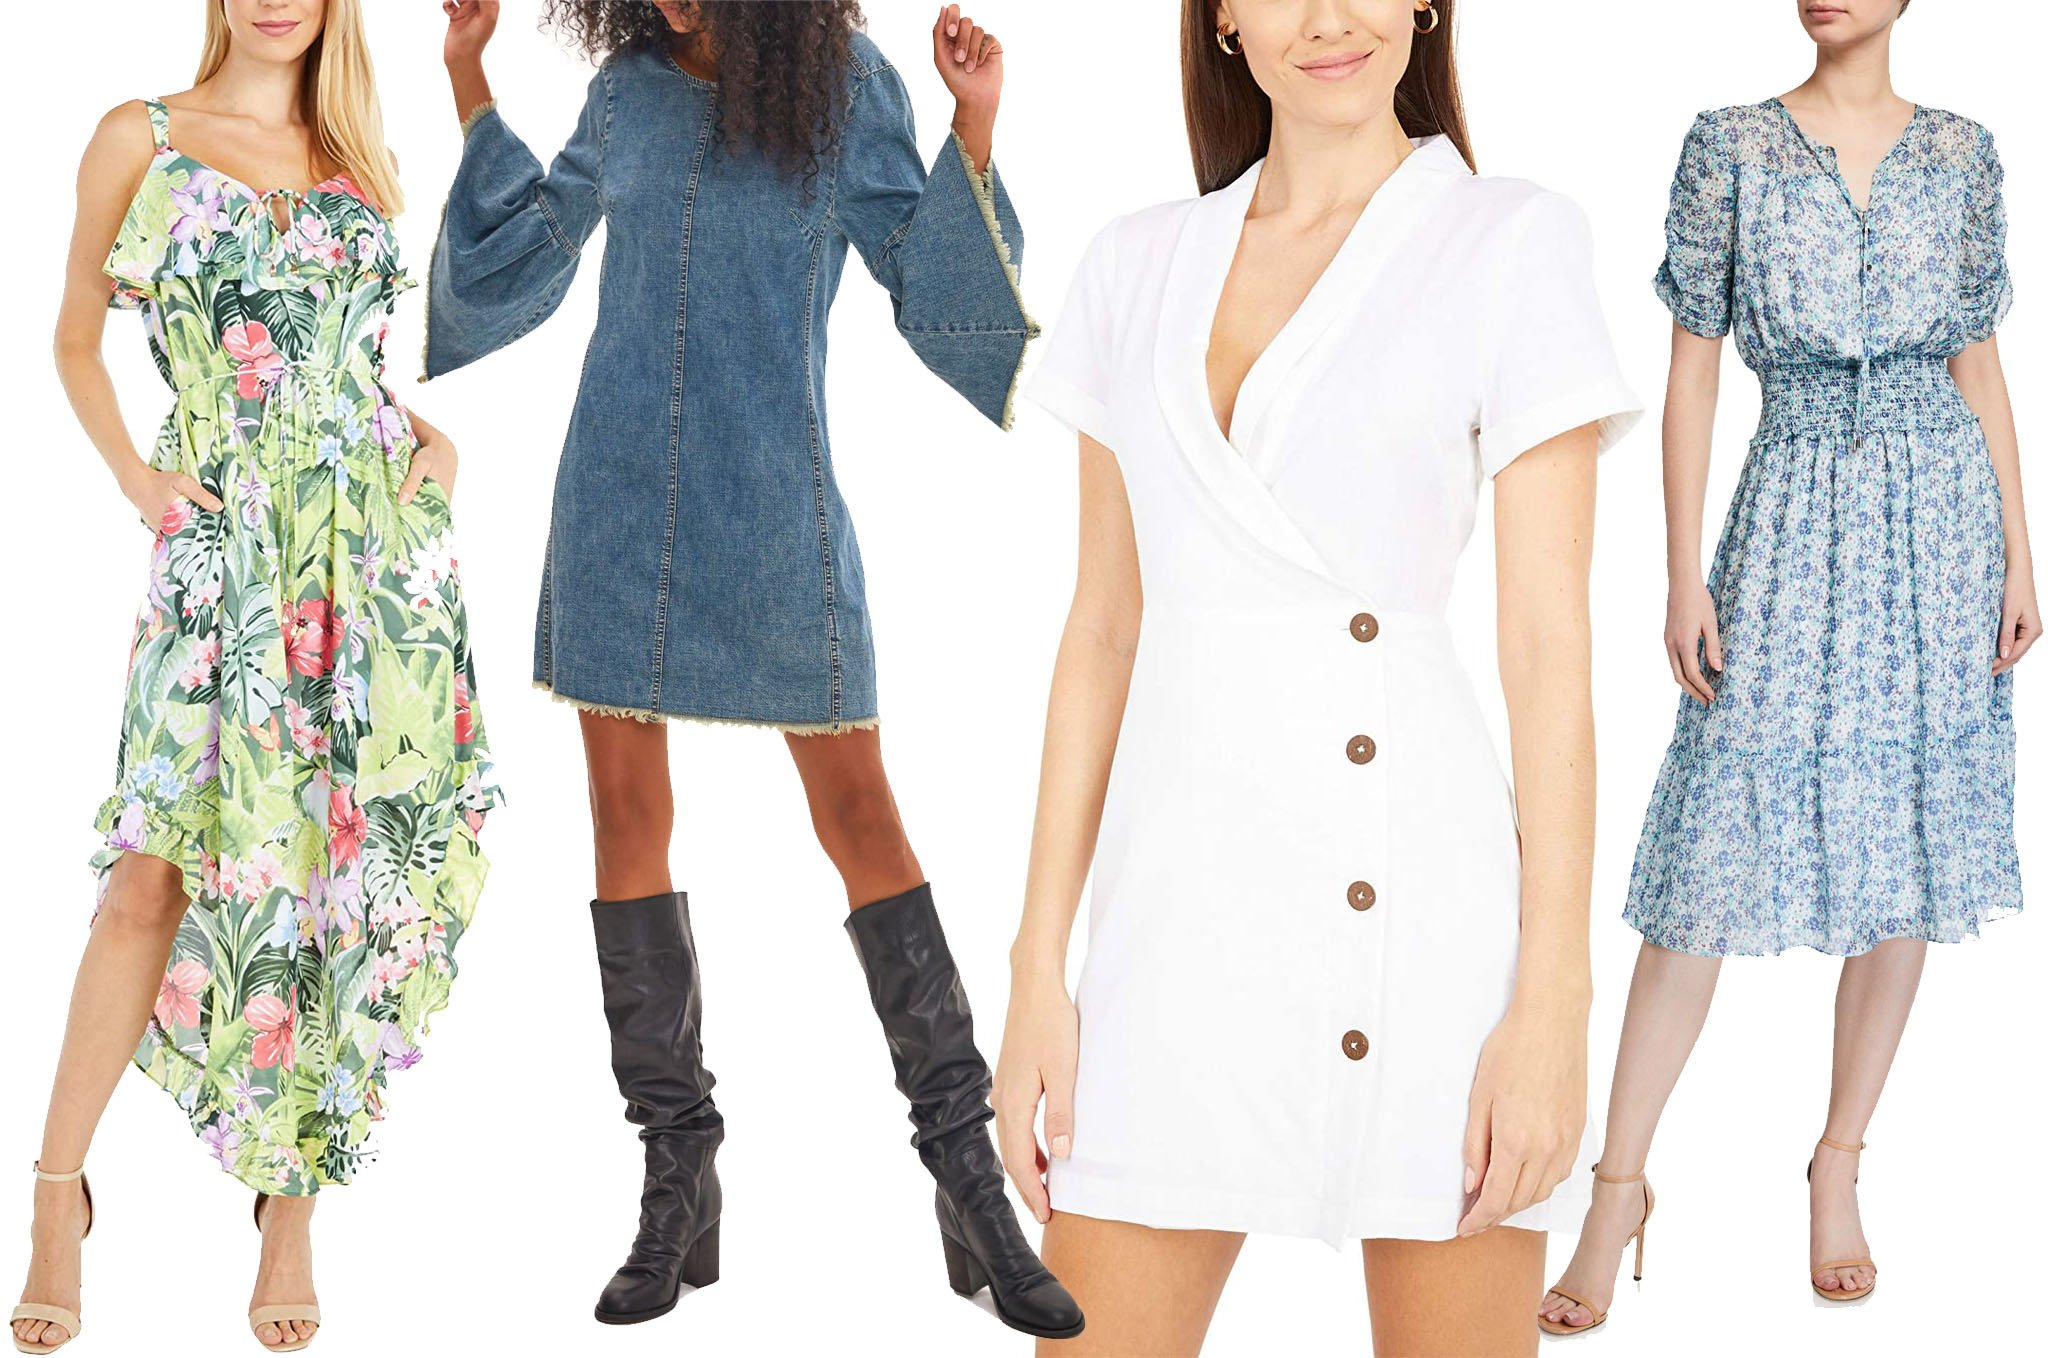 Floral, denim, white, and midi—these are just some of the most popular dress styles for summer